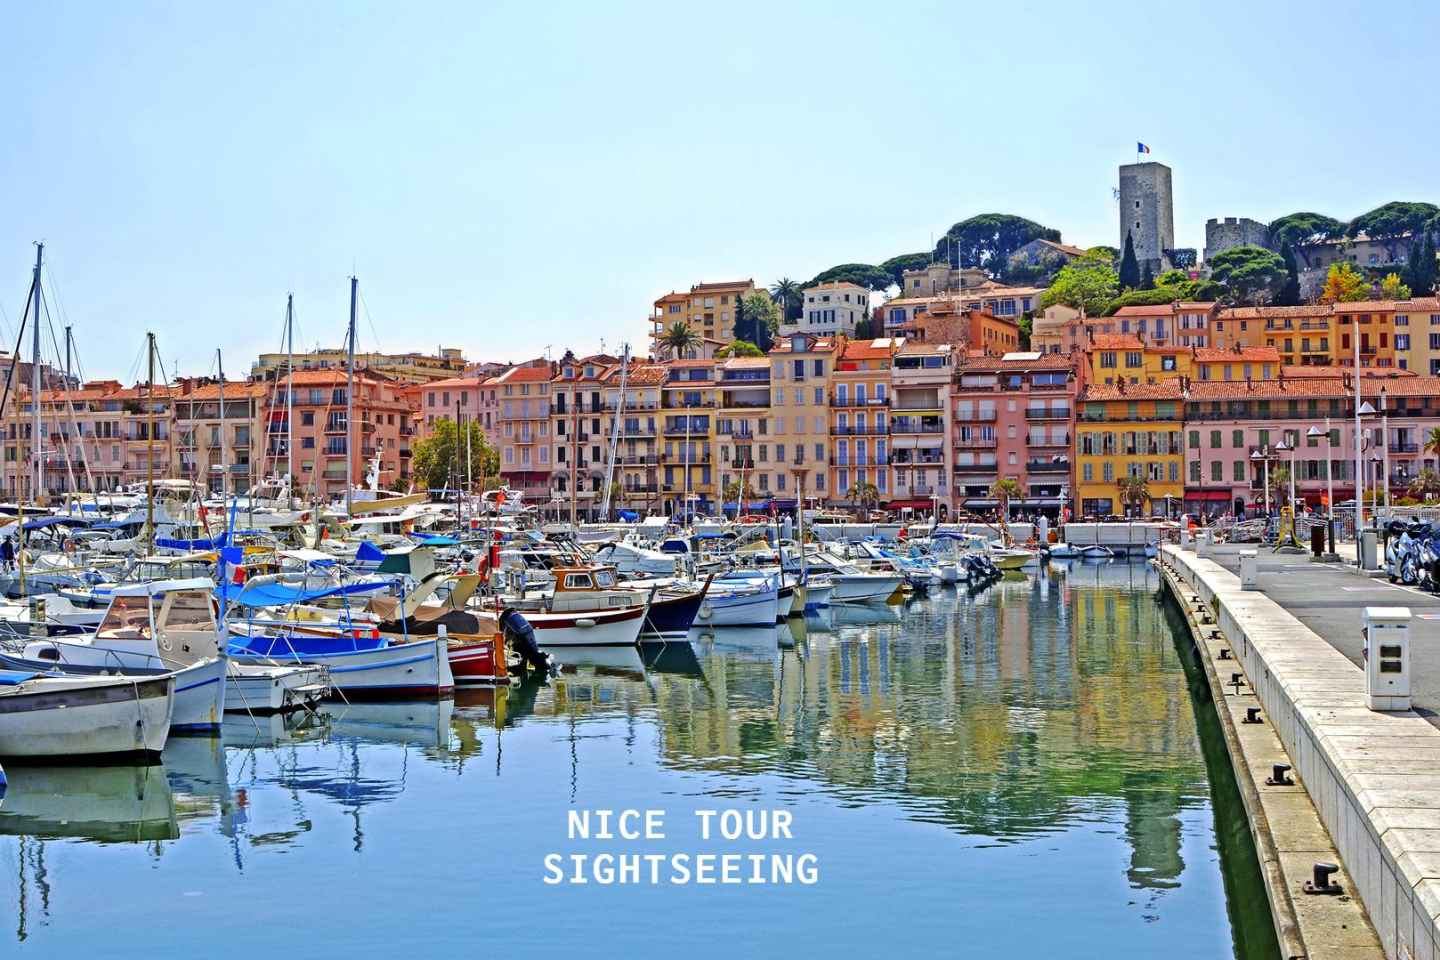 Ab Nizza: Tour nach Cannes, Antibes & Saint-Paul-de-Vence